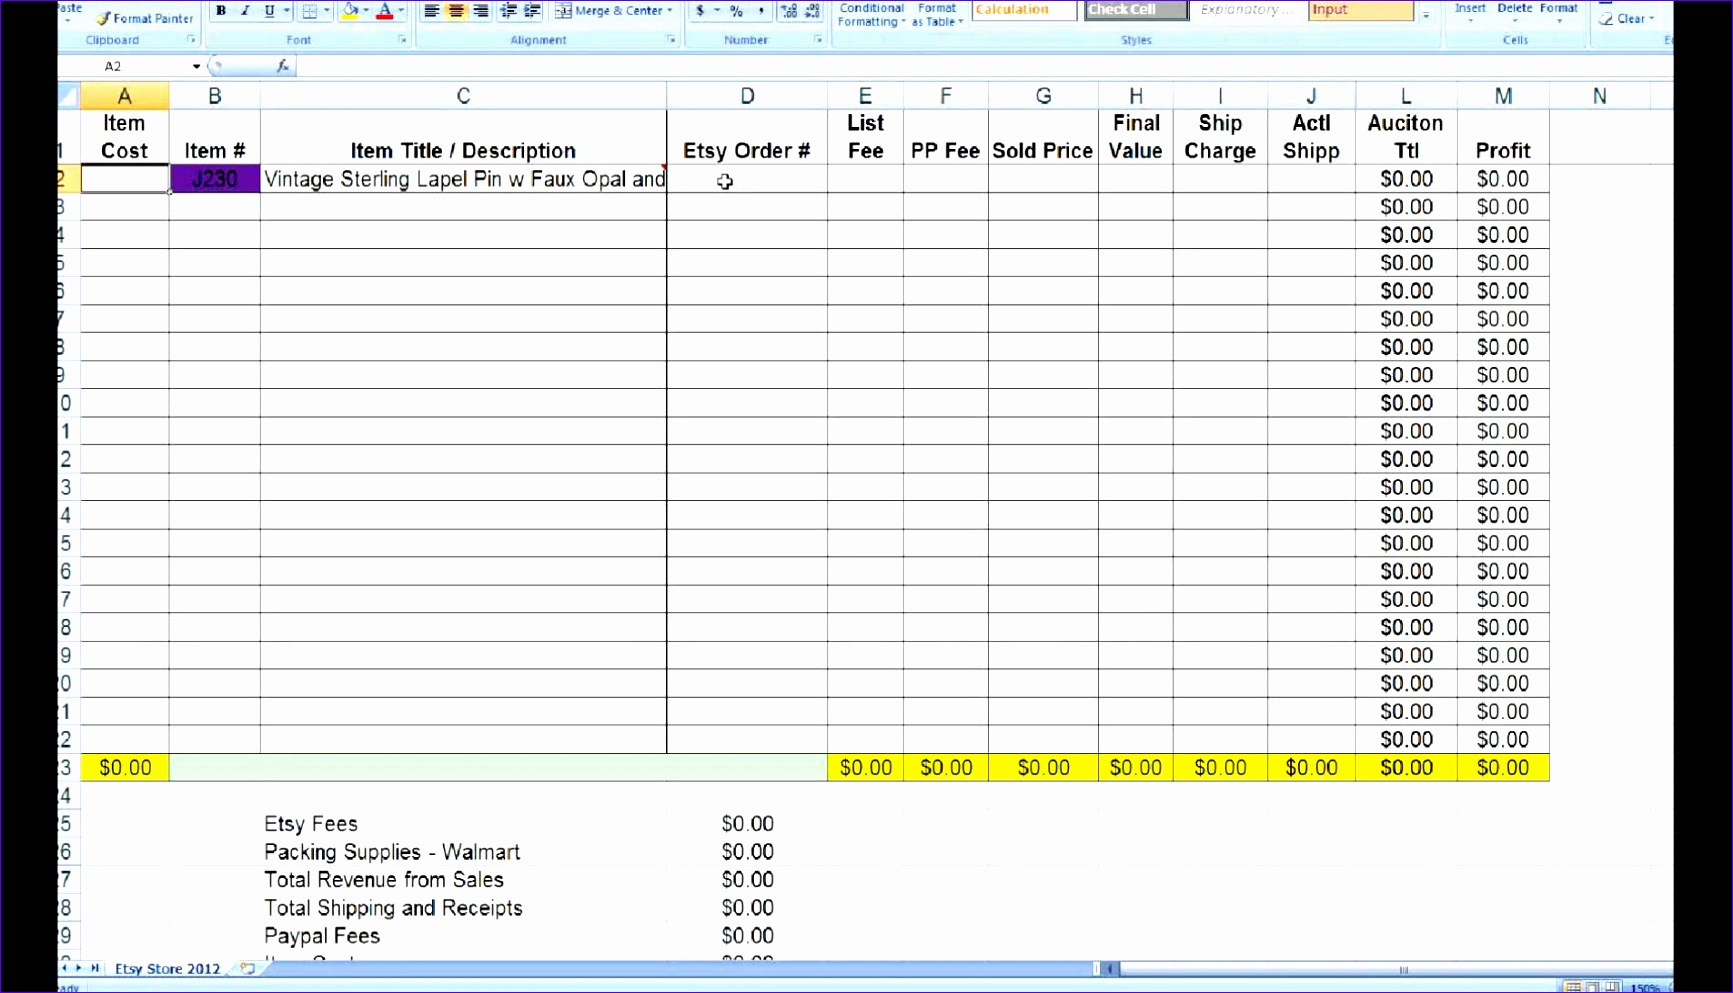 training record template in excel - 7 training record template in excel exceltemplates